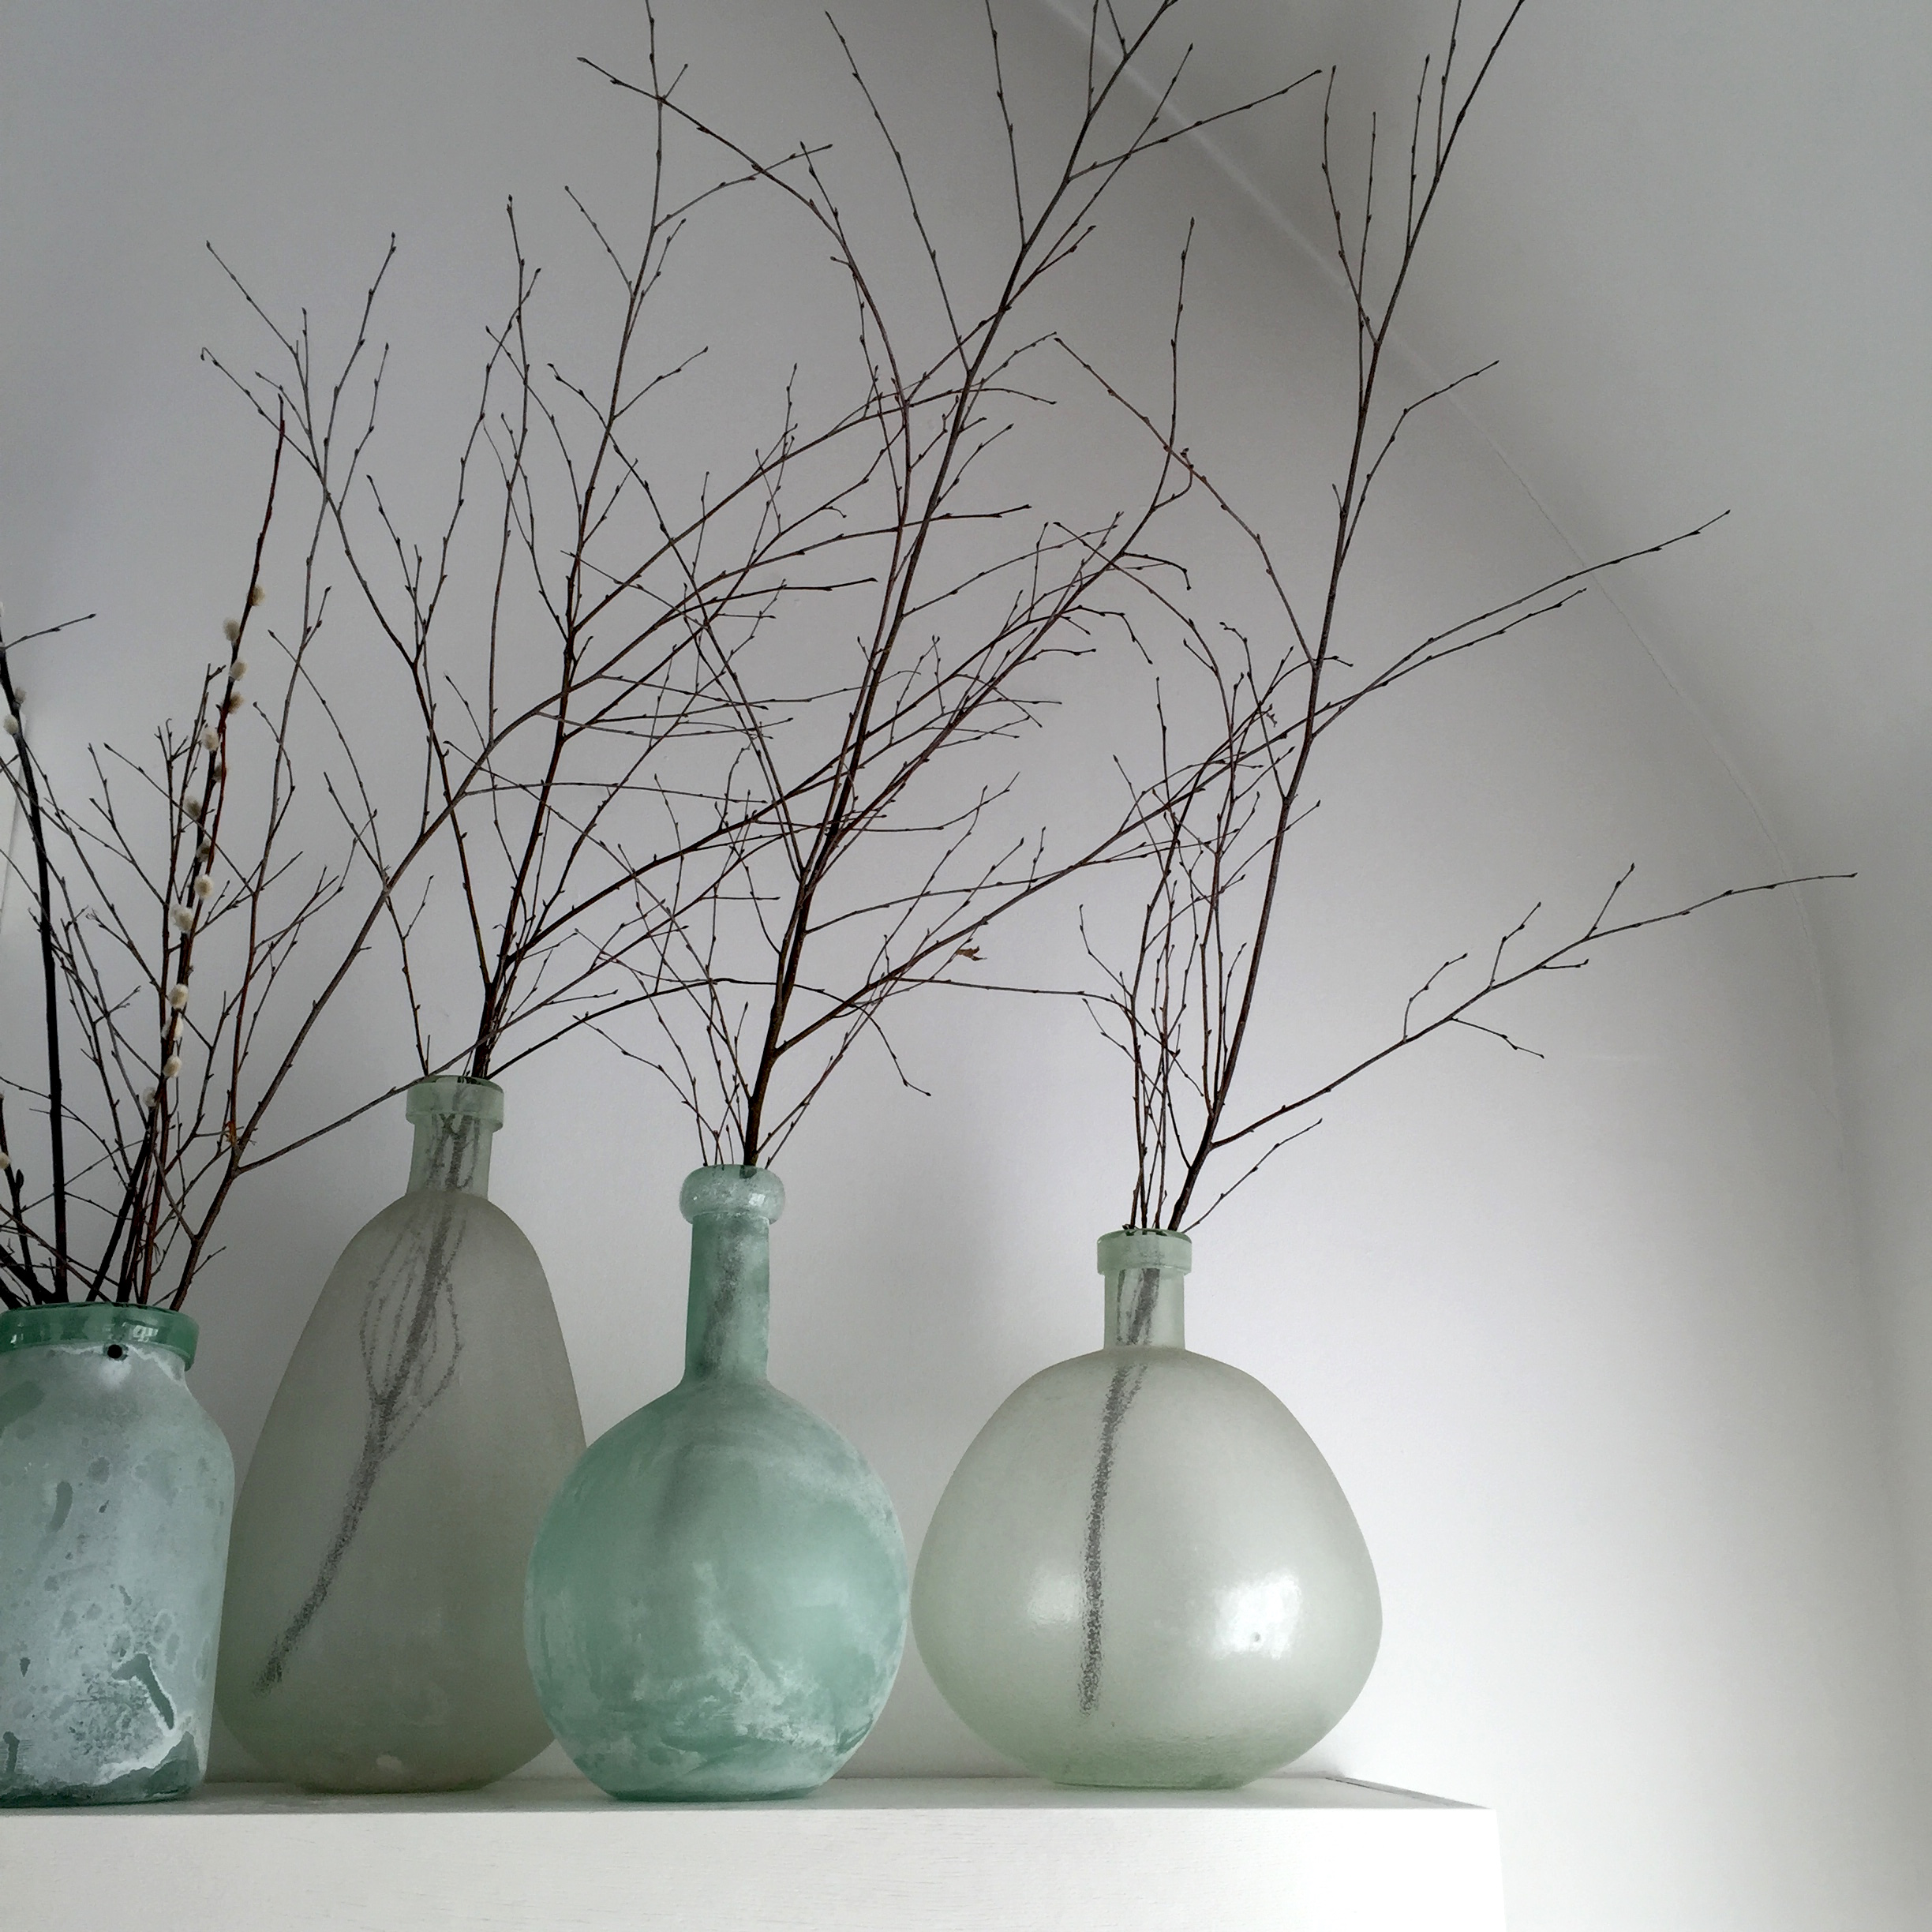 Bold Vases and Branches